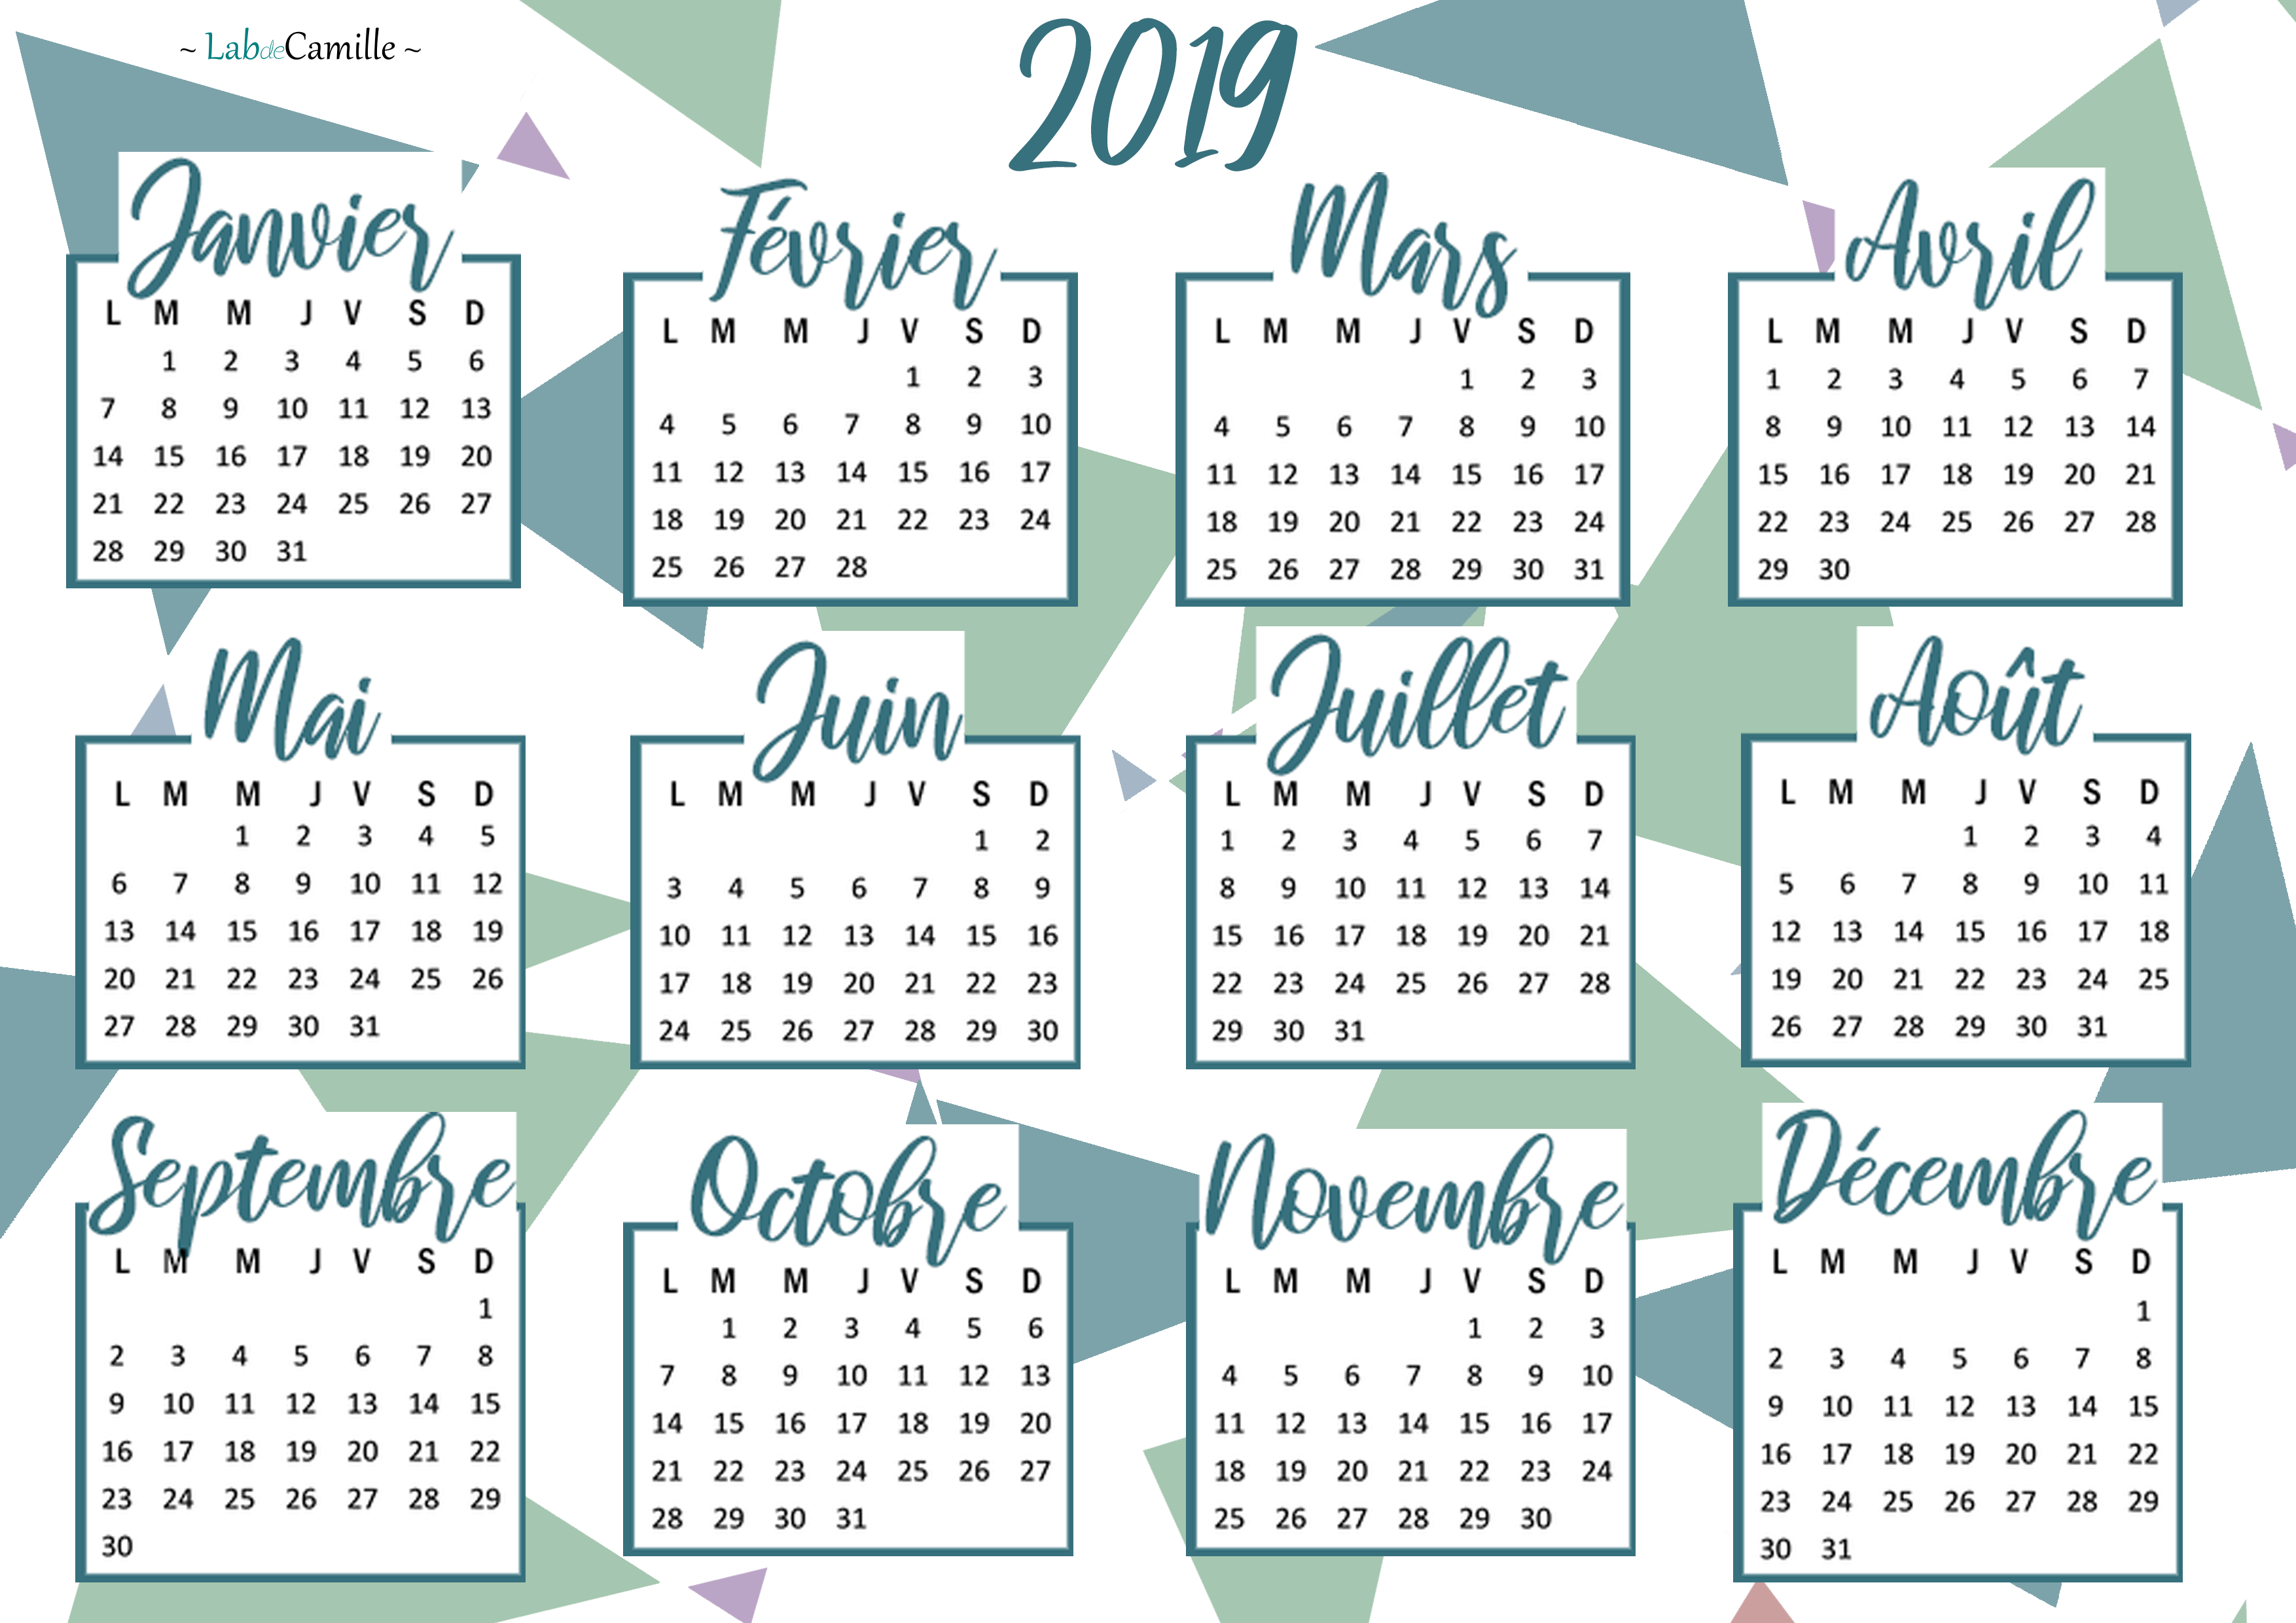 Calendrier 2019 Png.Calendrier 2019 A Imprimer Calendrier 2019 Organisation